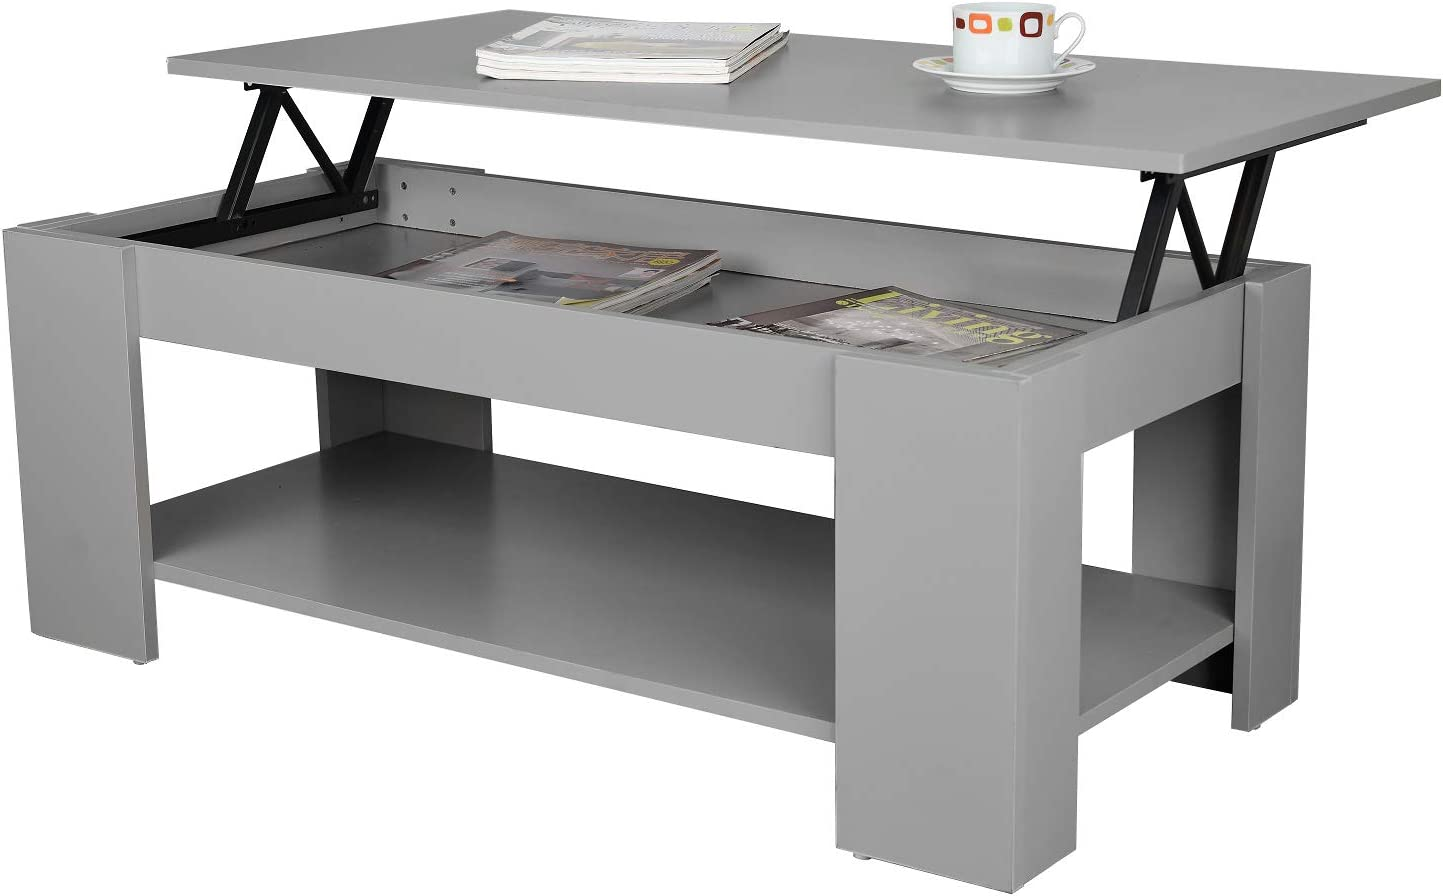 Espresso New Kimberly Lift Up Top Coffee Table with Hidden Storage /& Shelf